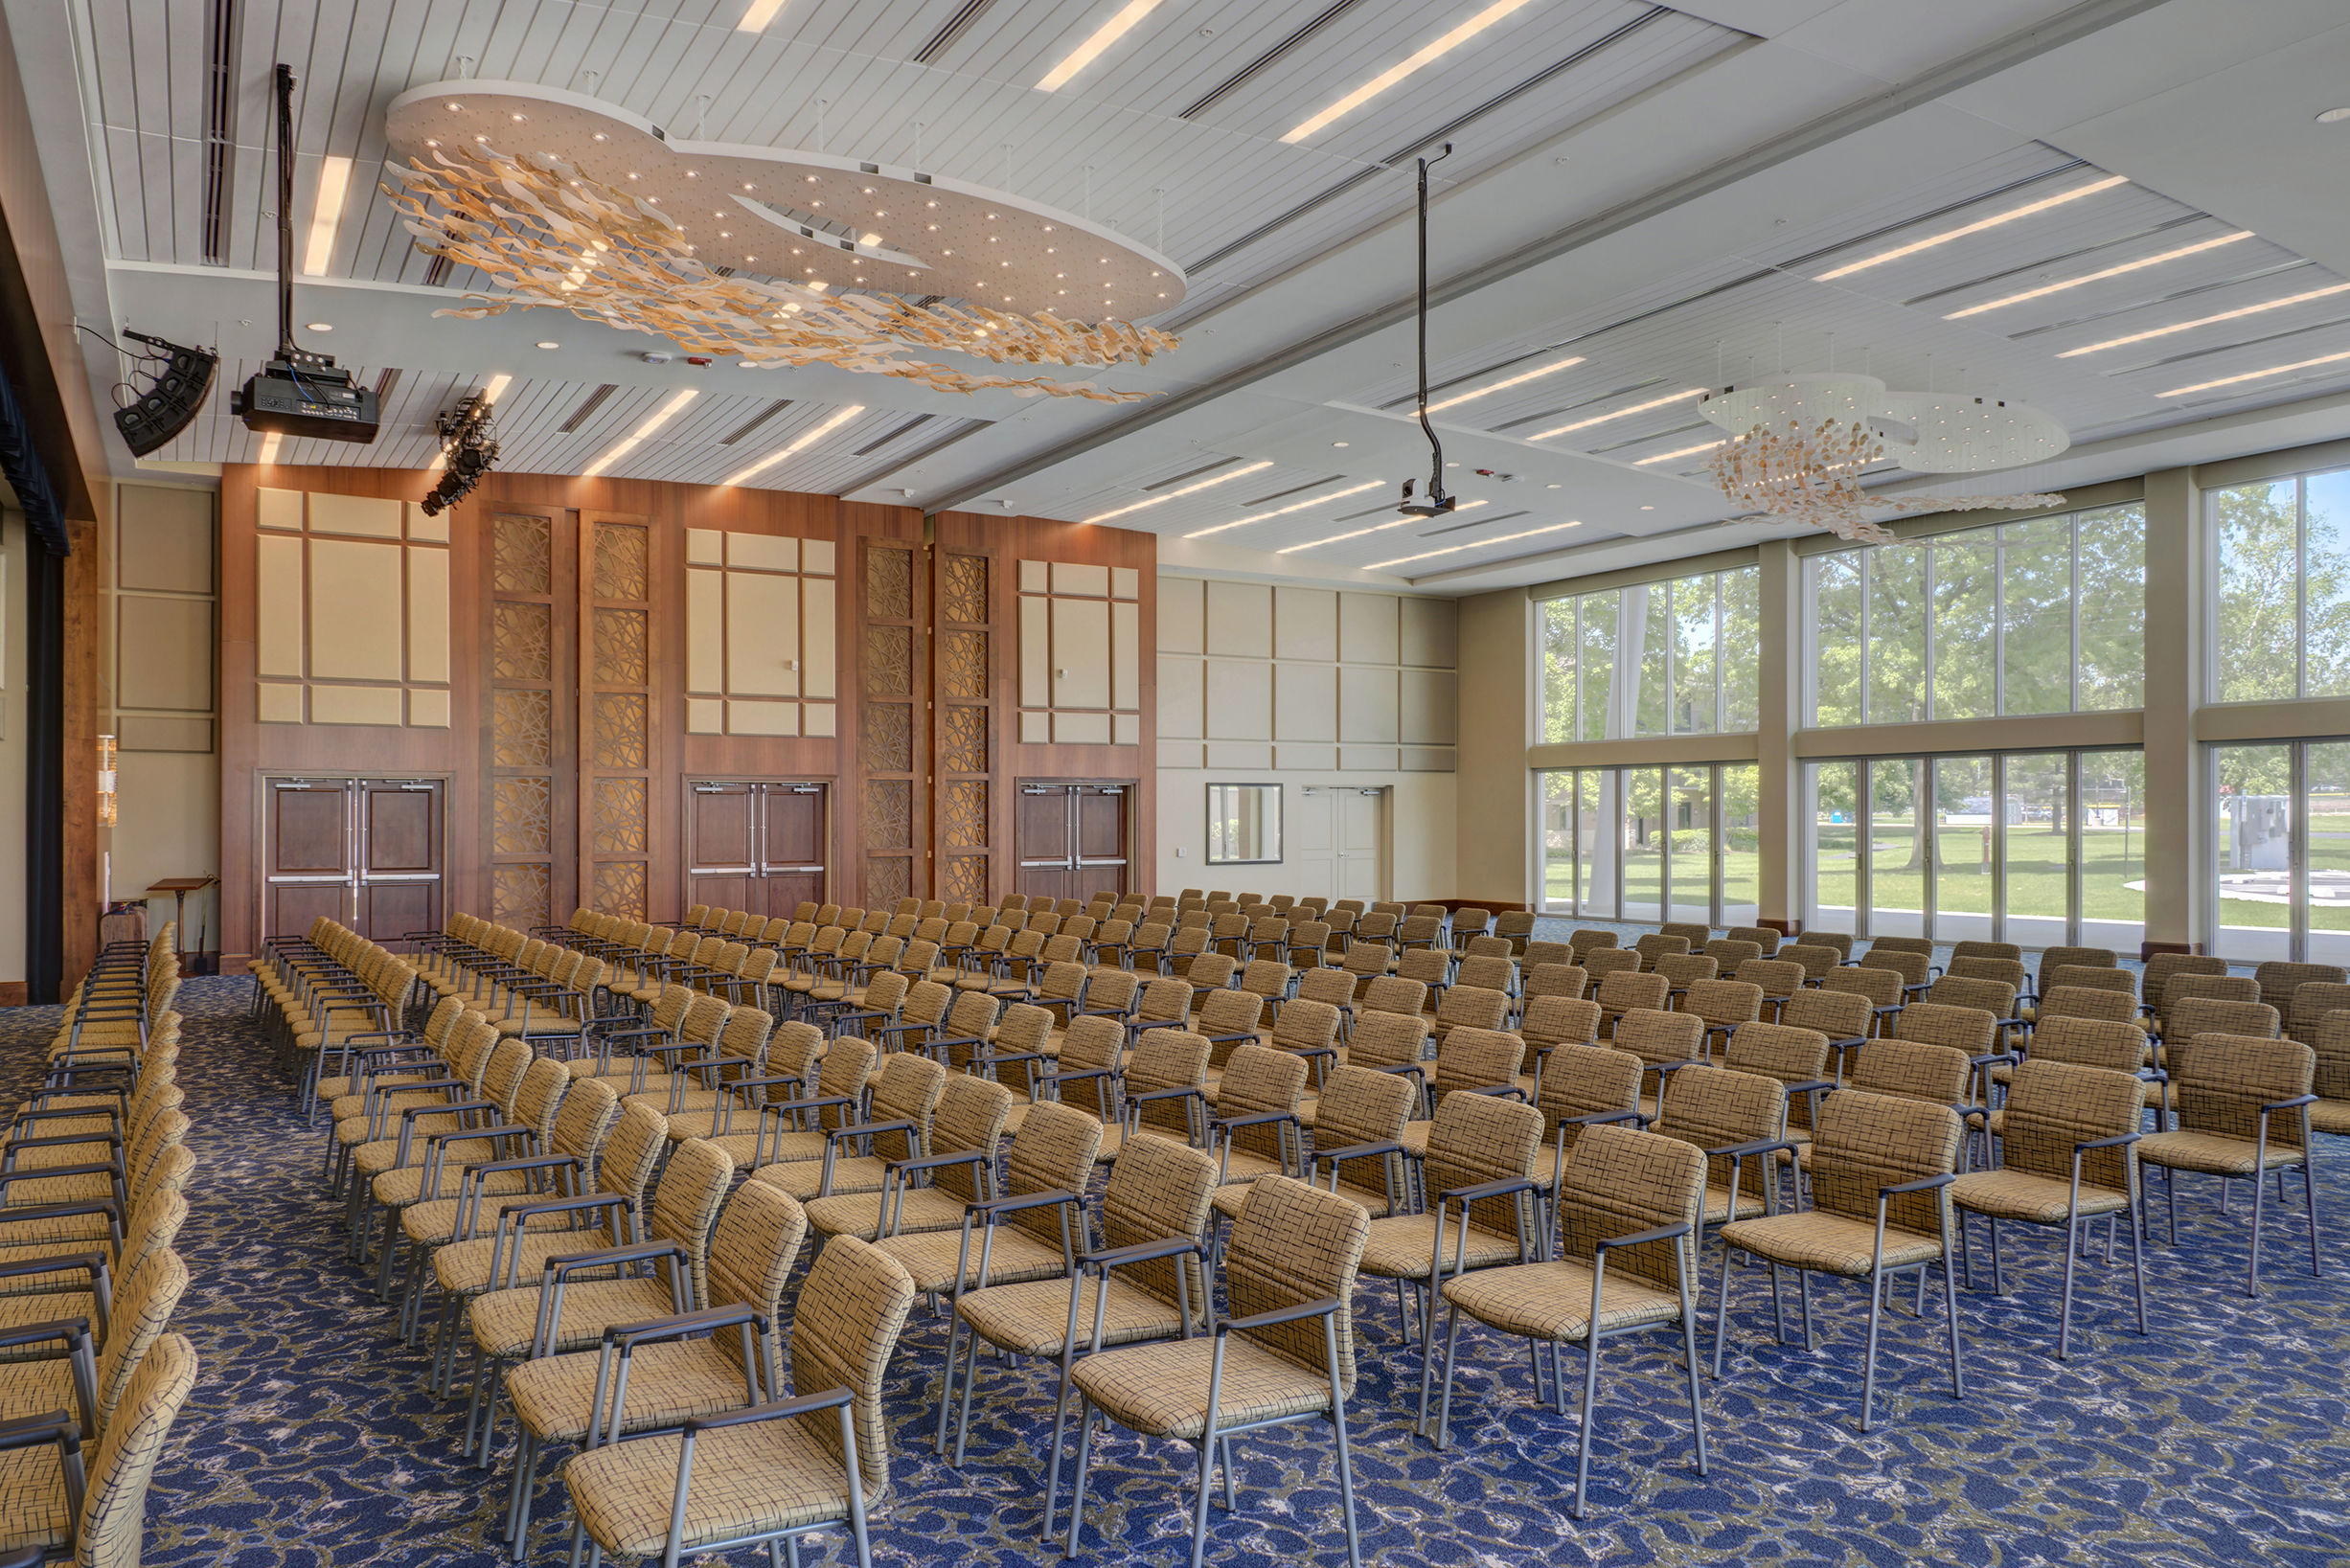 Rife Center Mechanicsburg Pennsylvania 500 seat auditorium THW senior living architects